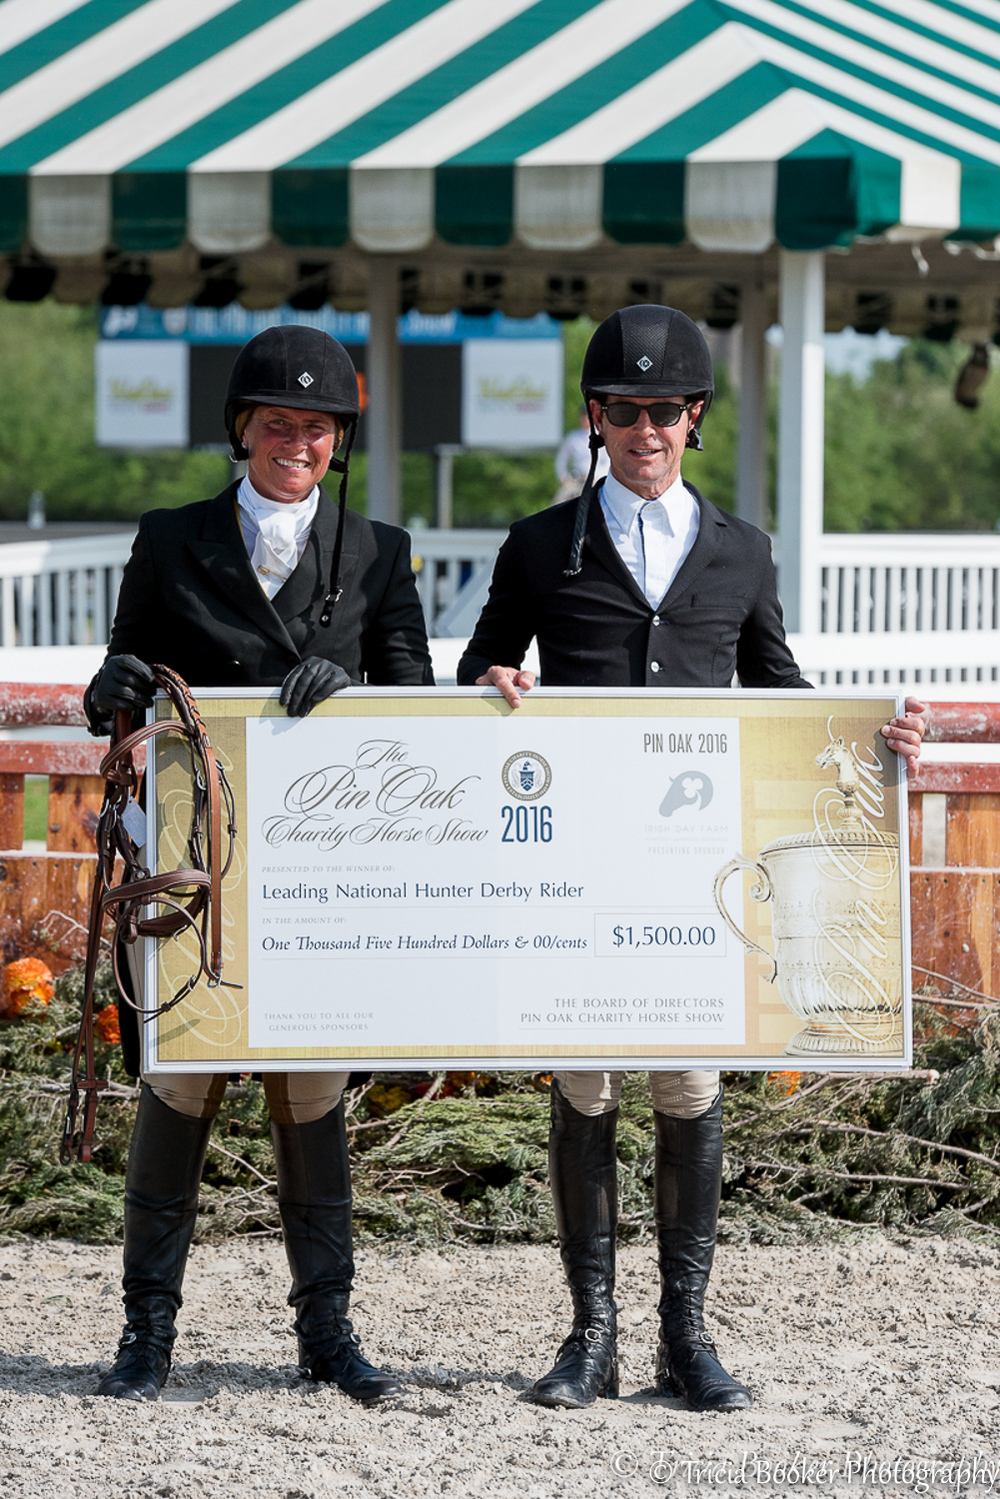 Jennifer Alfano and Peter Pletcher shared the Leading Rider title at Pin Oak earlier this year.